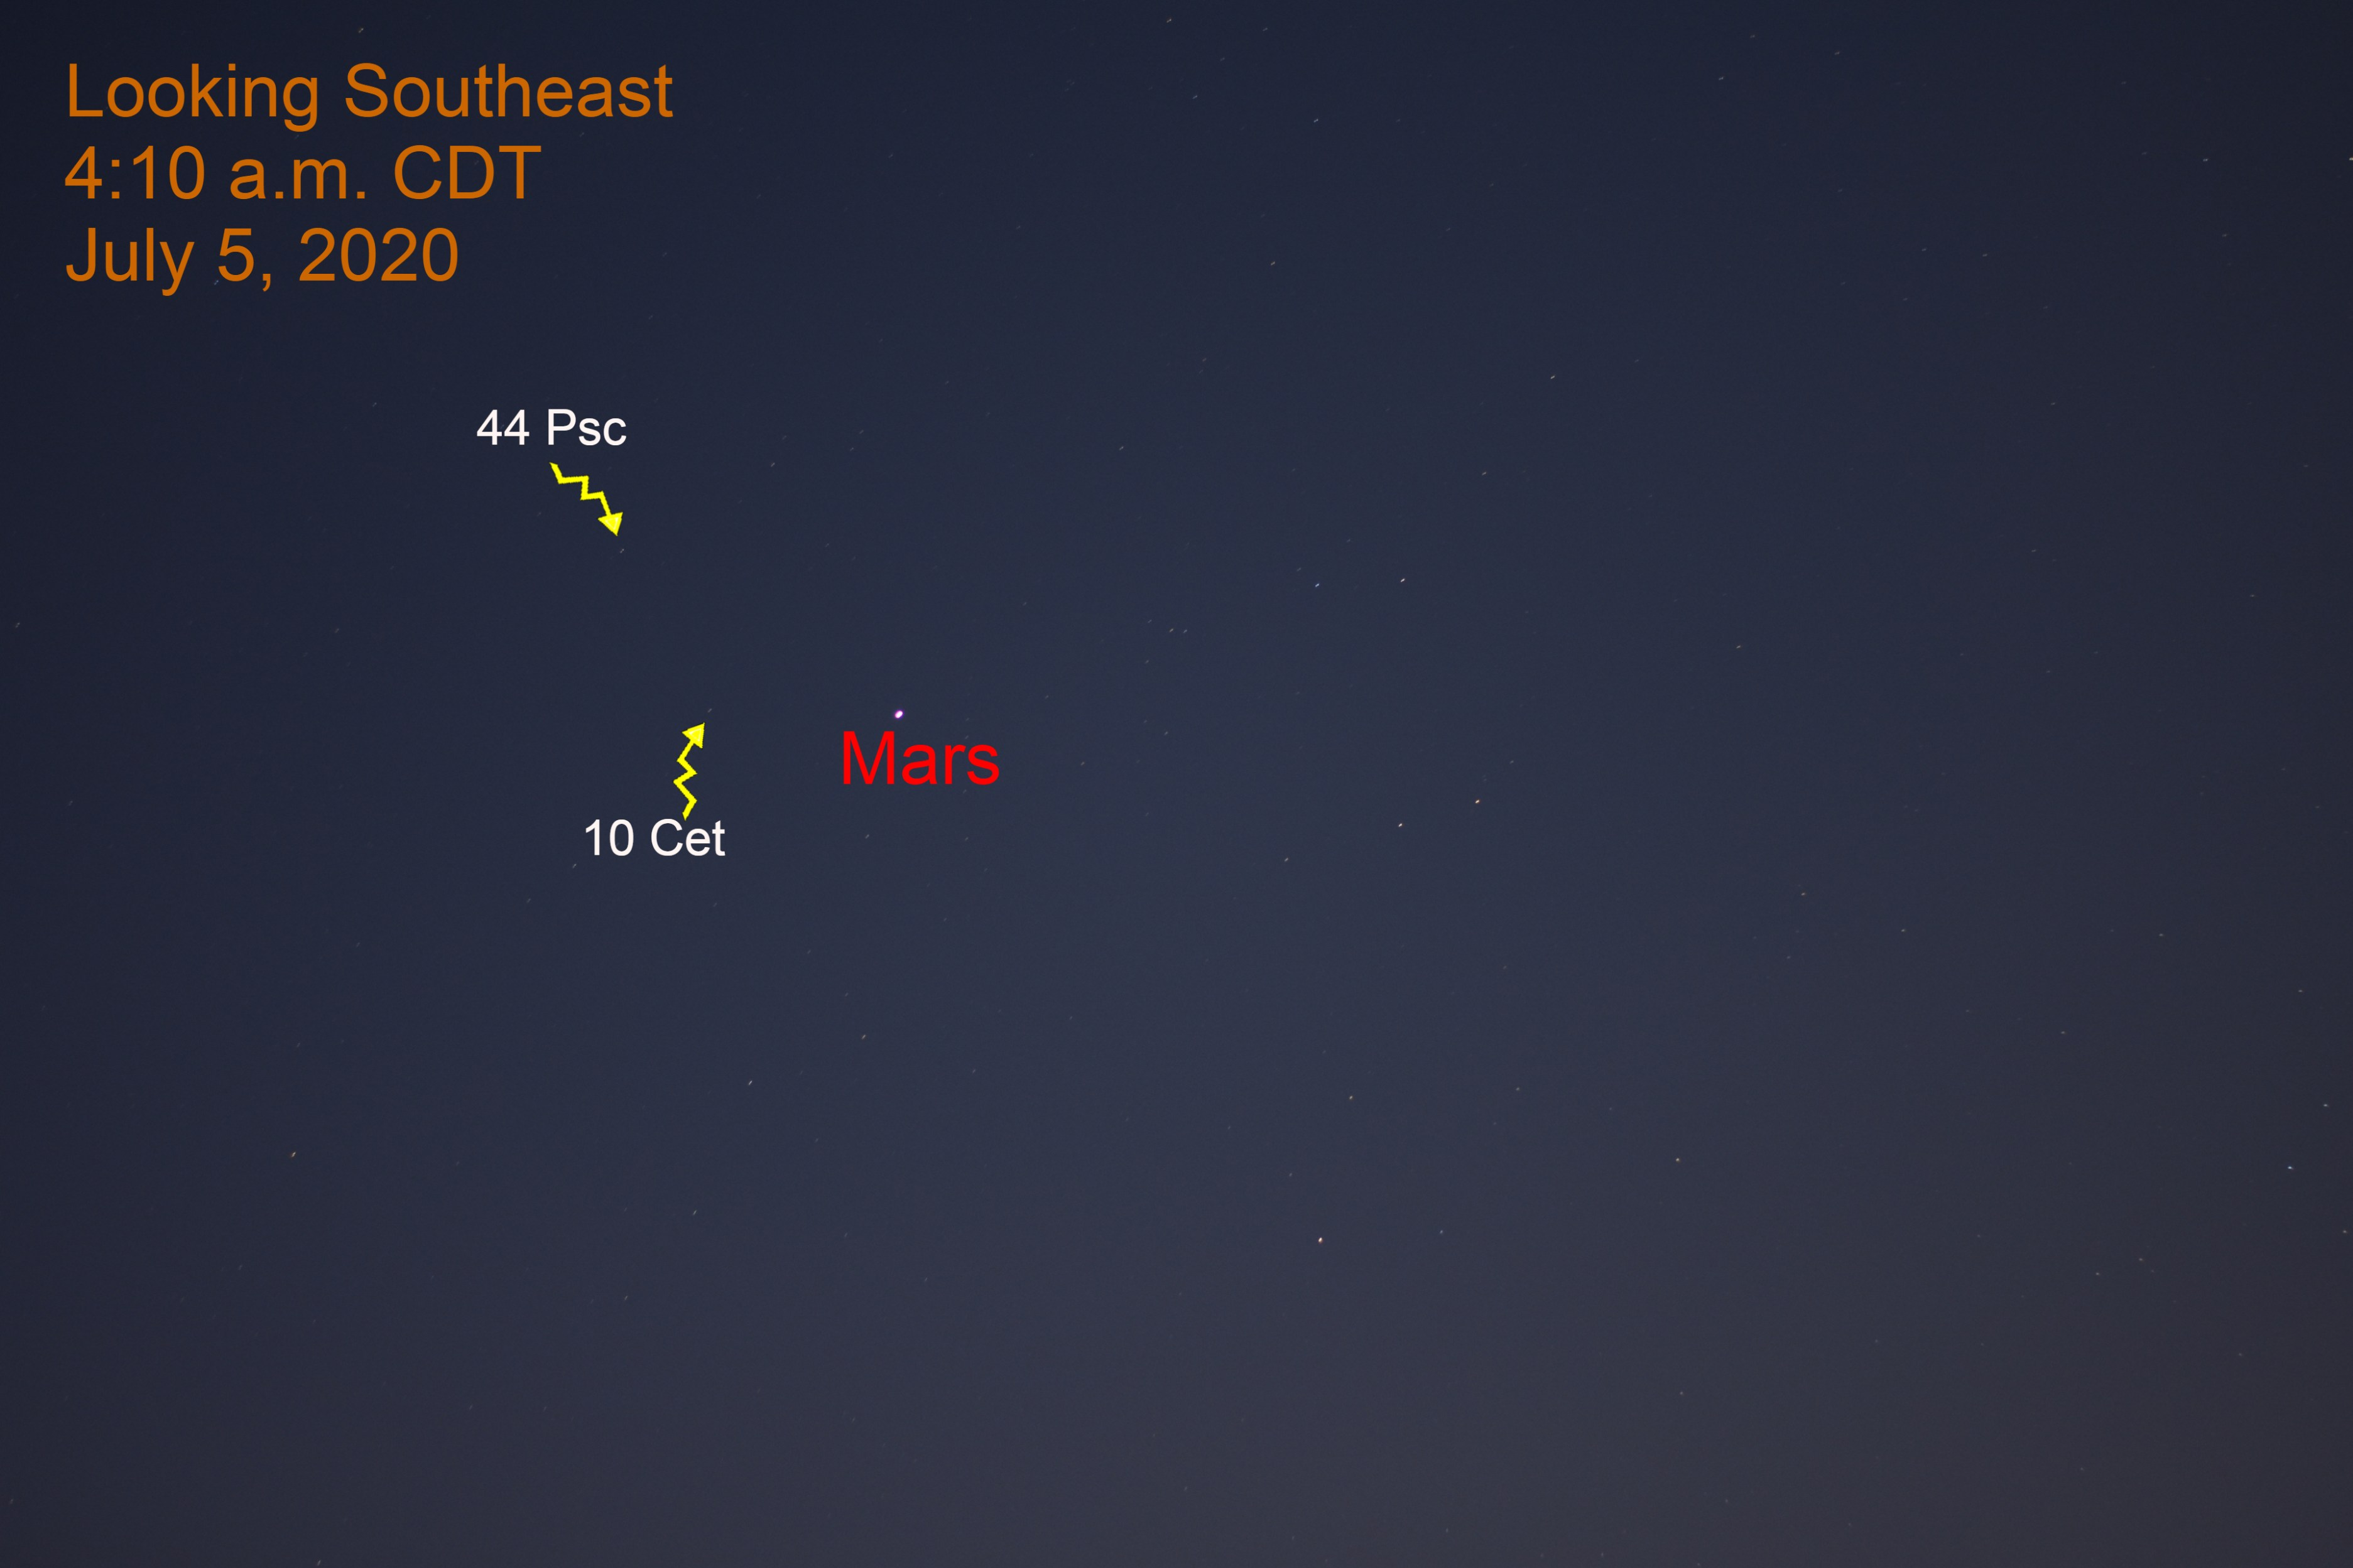 Mars is near the Pisces - Cetus border, July 5, 2020.